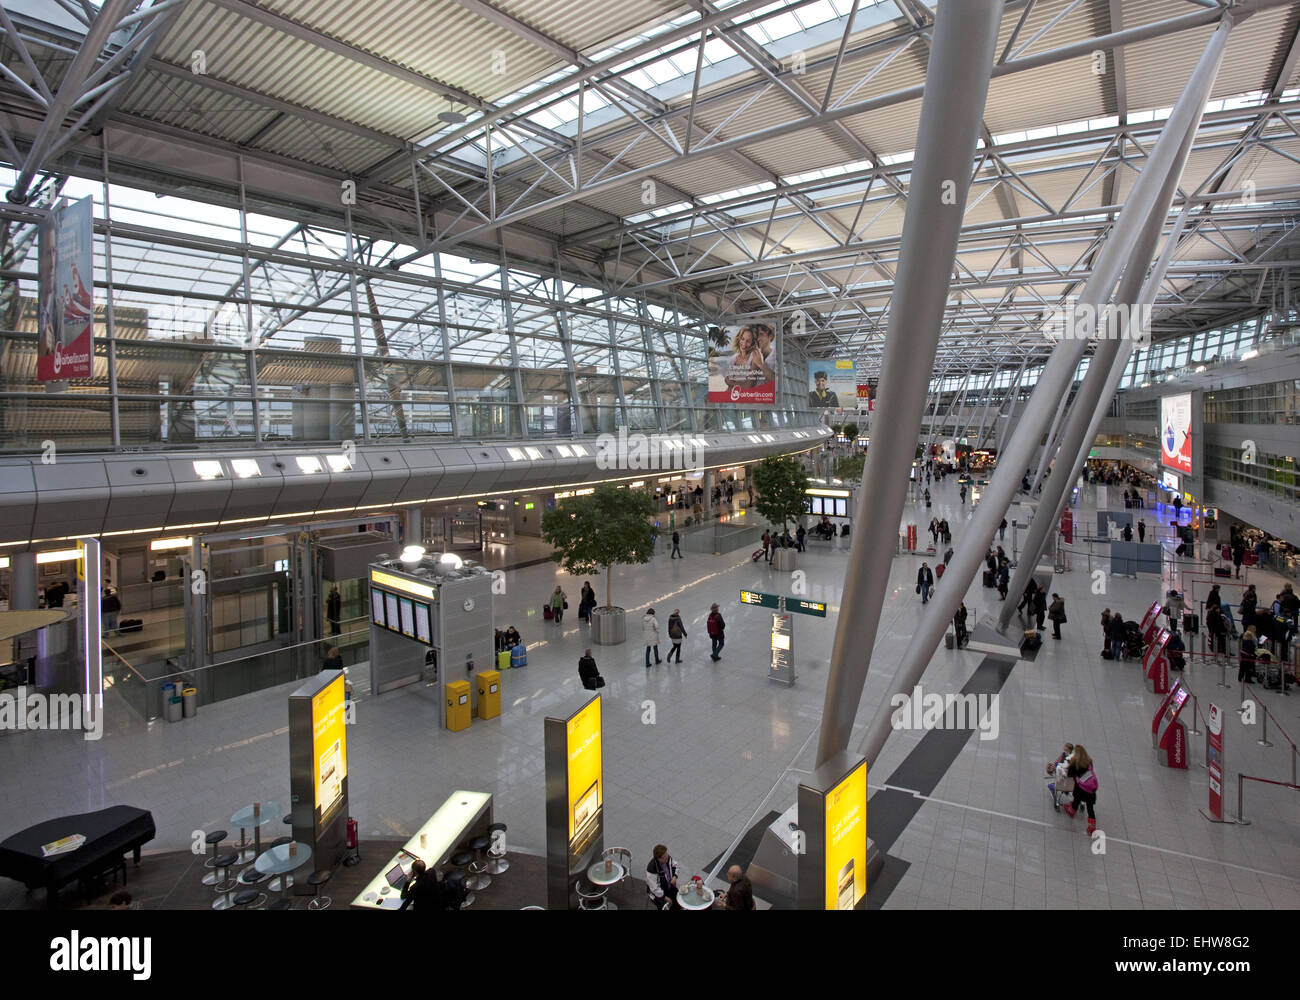 The Dusseldorf International Airport. - Stock Image